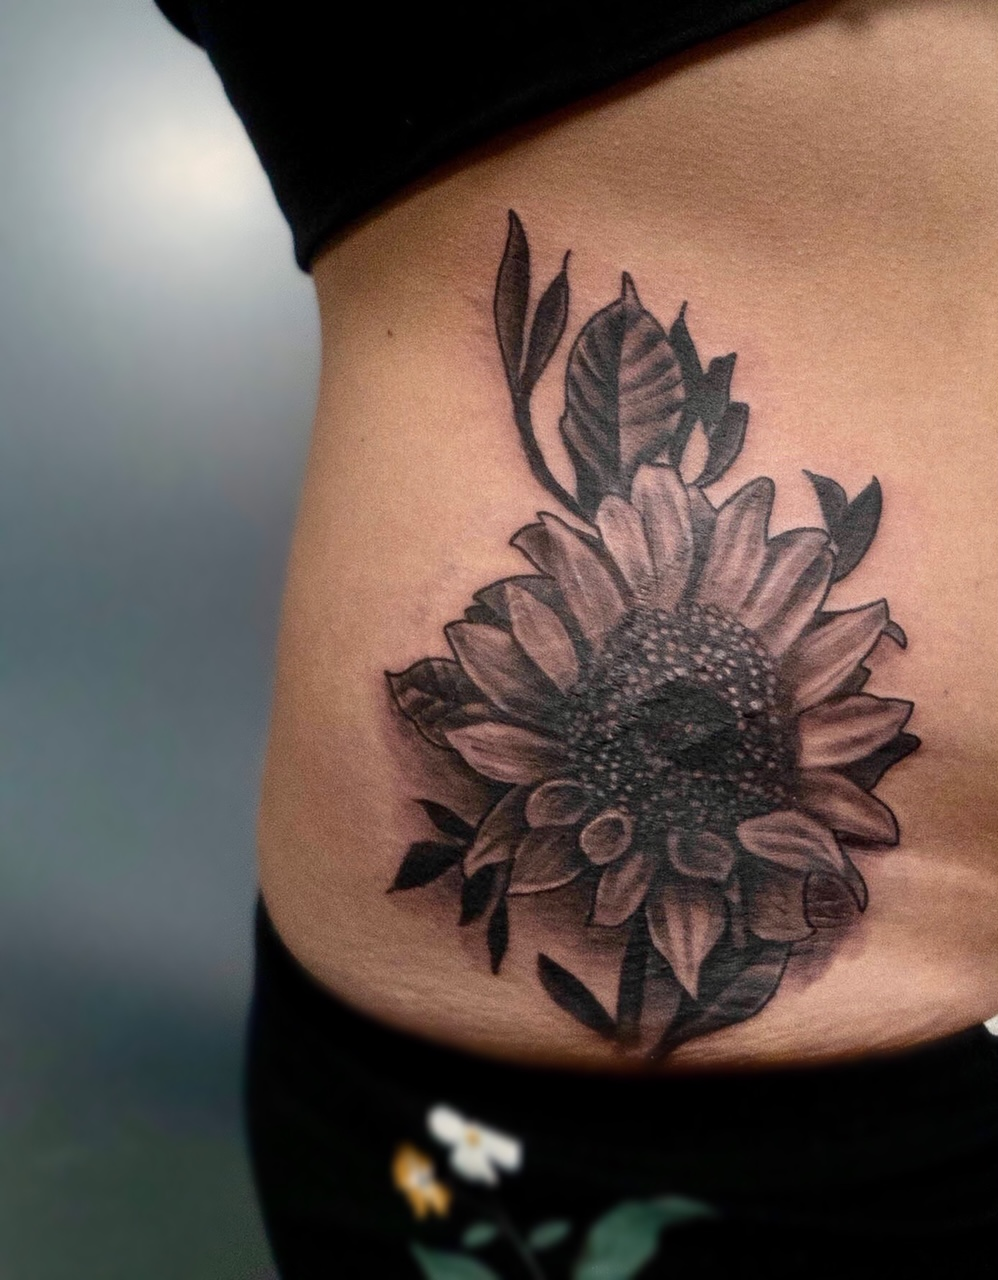 Custom Black and Grey Sunflower Tattoo by Ruben Trujillo at Certified Tattoo Studios Denver CO.jpg